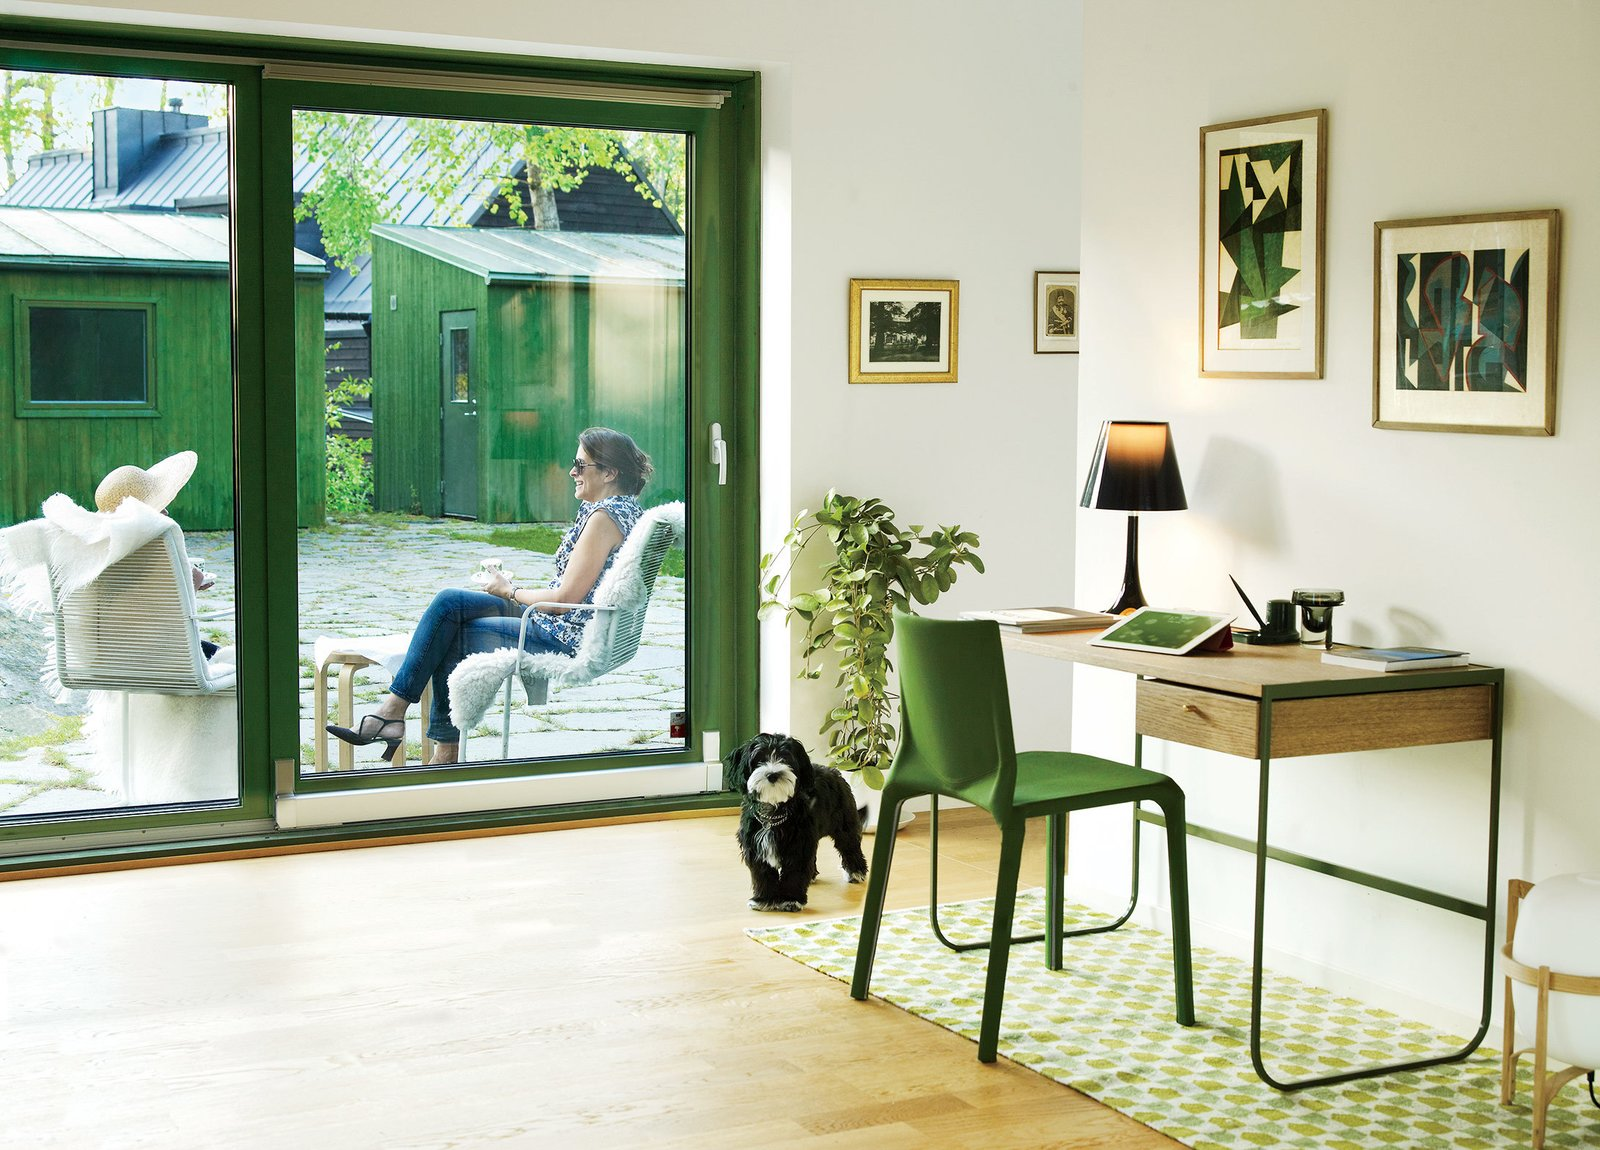 "Living Room, Chair, Light Hardwood Floor, Table Lighting, Rug Floor, Lamps, and Desk Franson Wreland also designed the court-yard and a pair of 160-square-foot outbuildings—one is used as guest quarters and the other as storage space. While residents Julia and Fatima Olivero-Reinius chat outdoors, Chippie the dog approaches an Asplund desk and a chair by LucidiPevere.  Search ""11plus world desk clock"" from This Bright Green Prefab in Sweden Looks Just Like a Monopoly House"